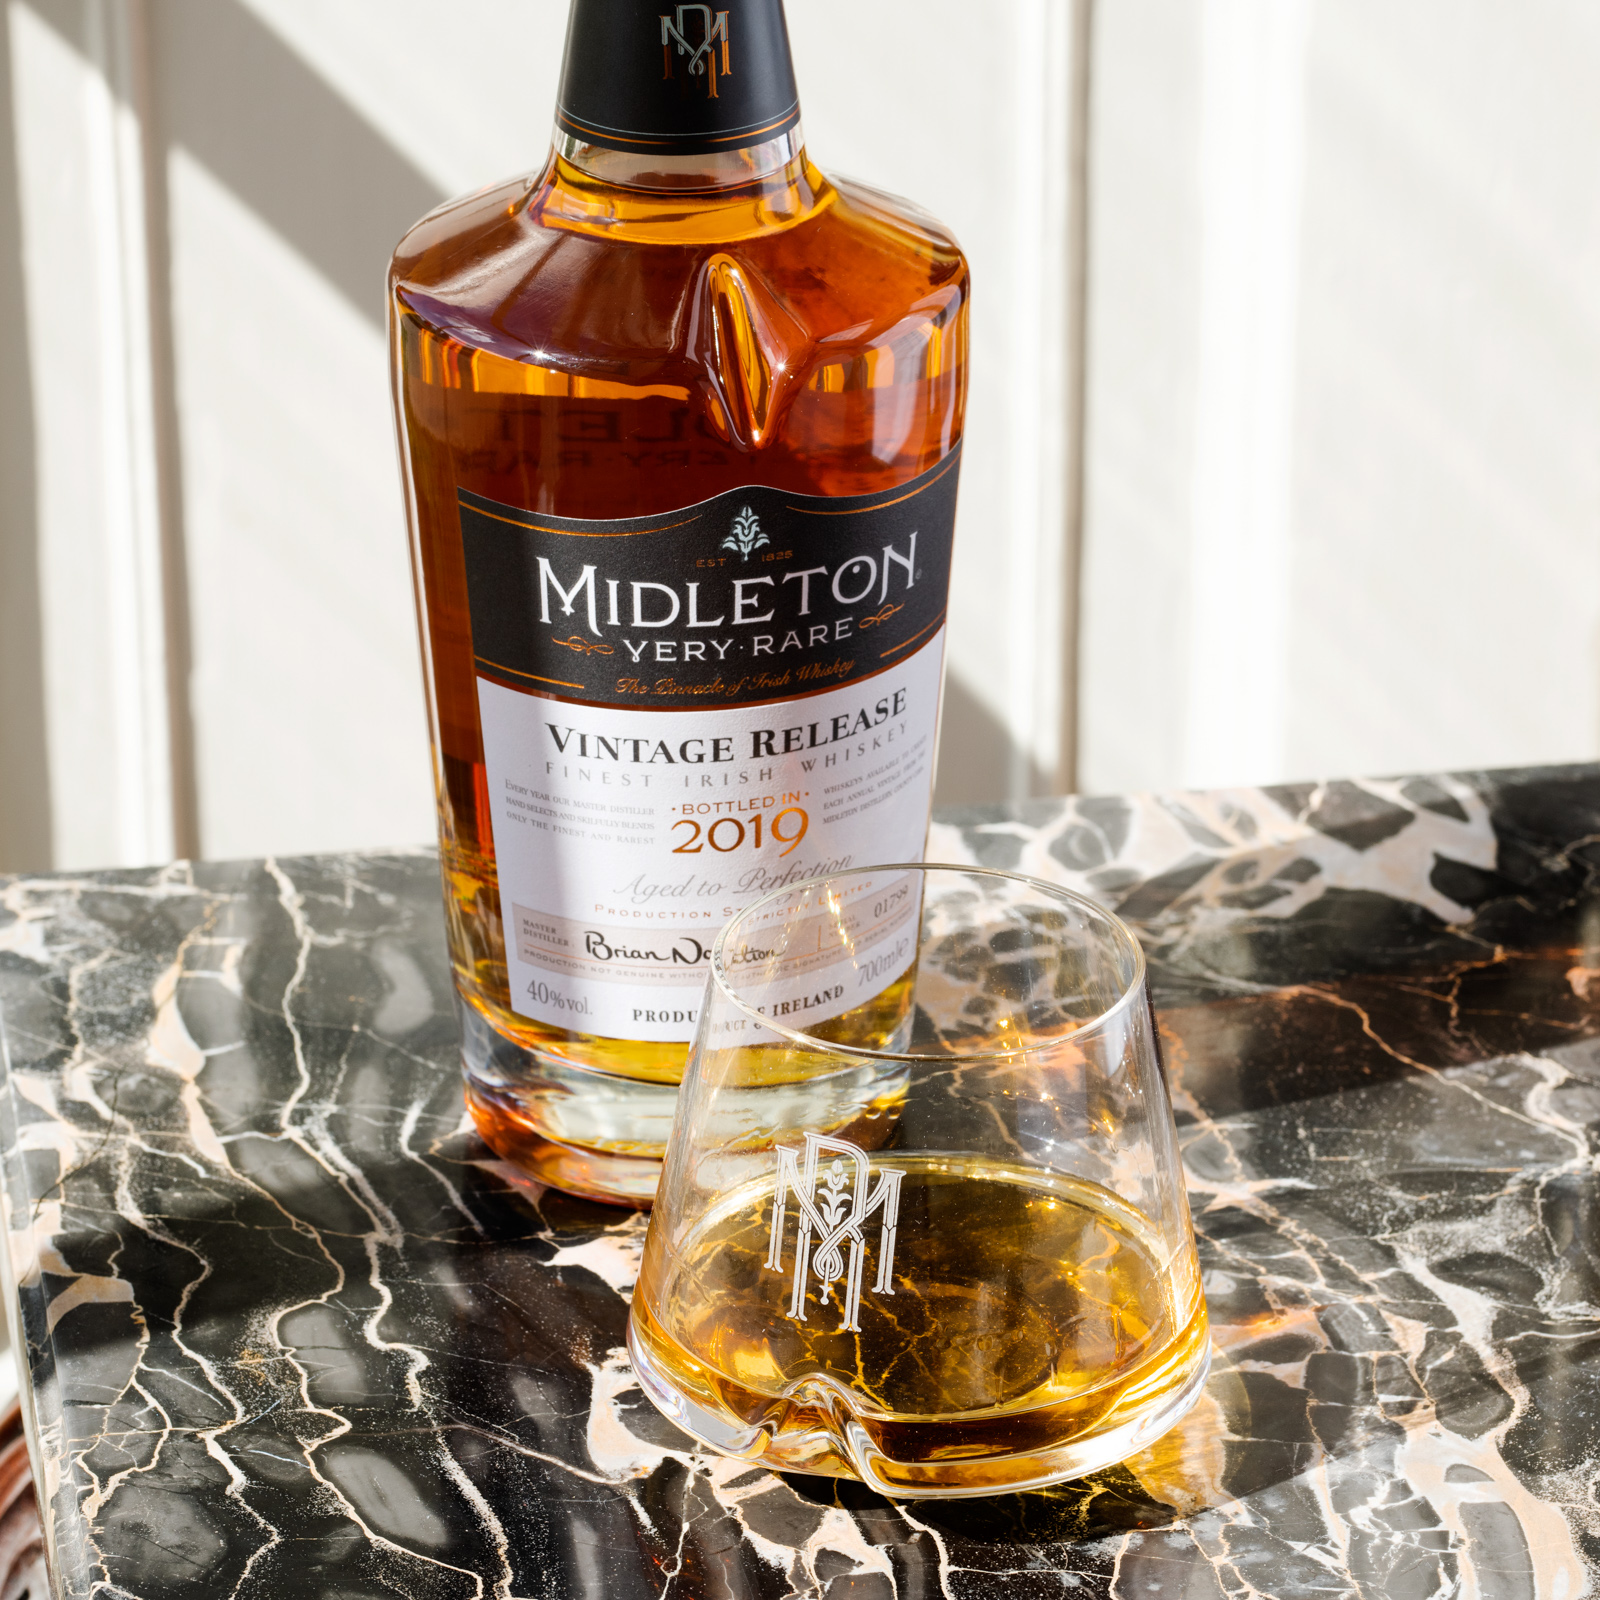 Client: Midleton Very Rae